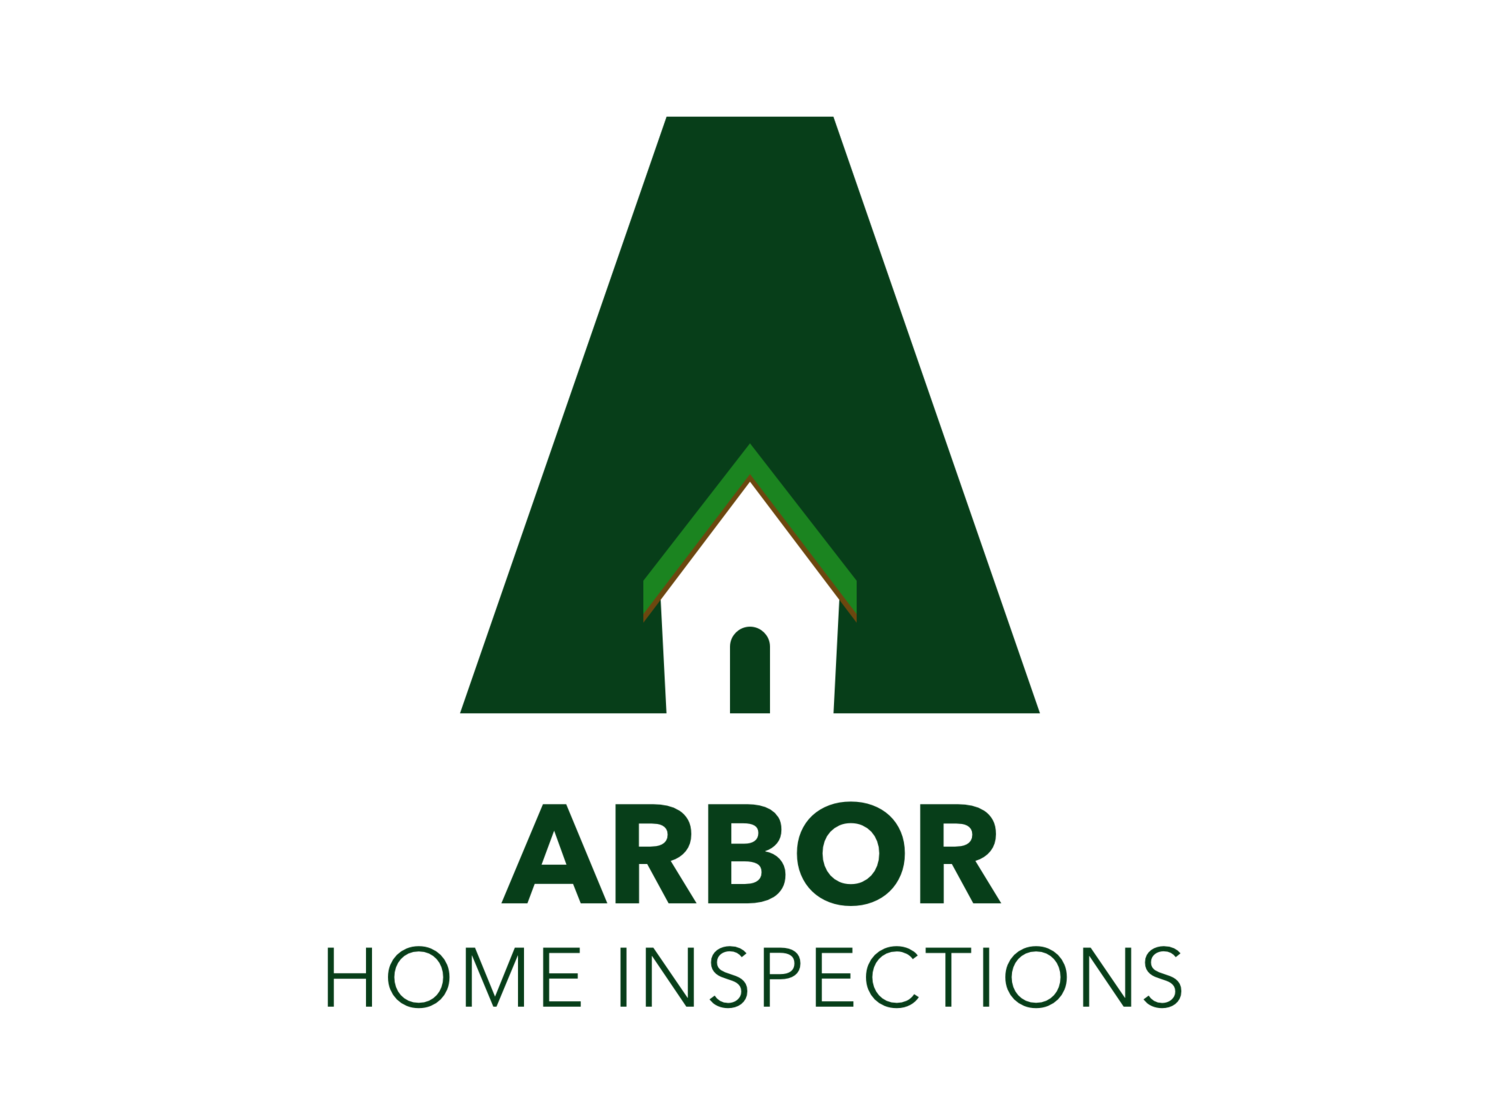 Arbor Home Inspections